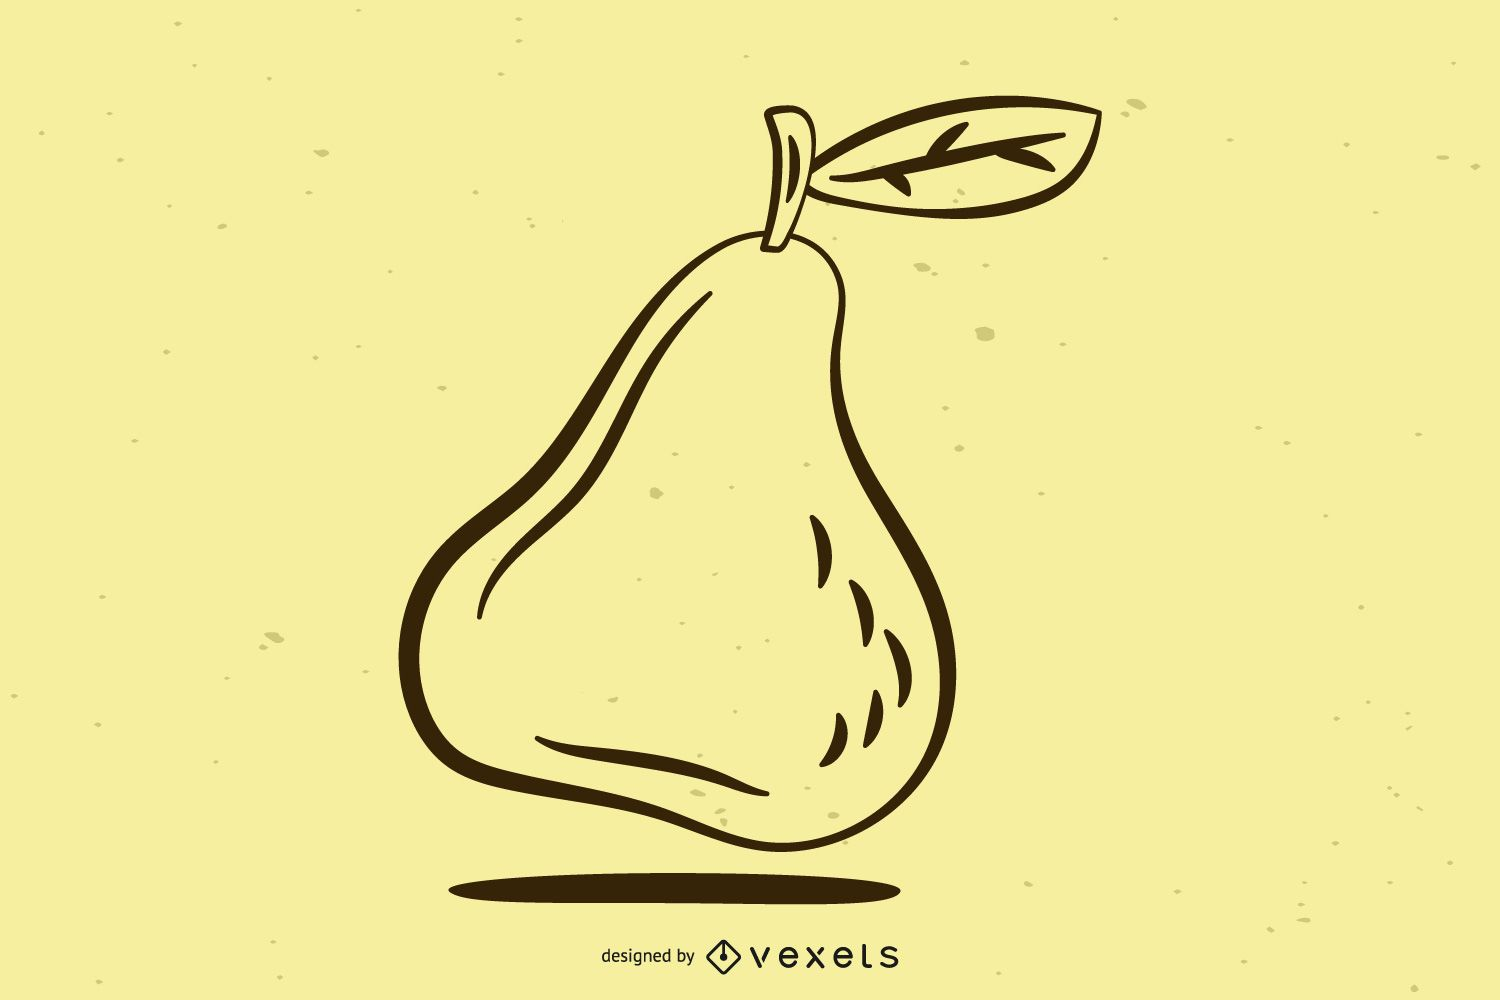 Black & White Pear Line Art with Leaves